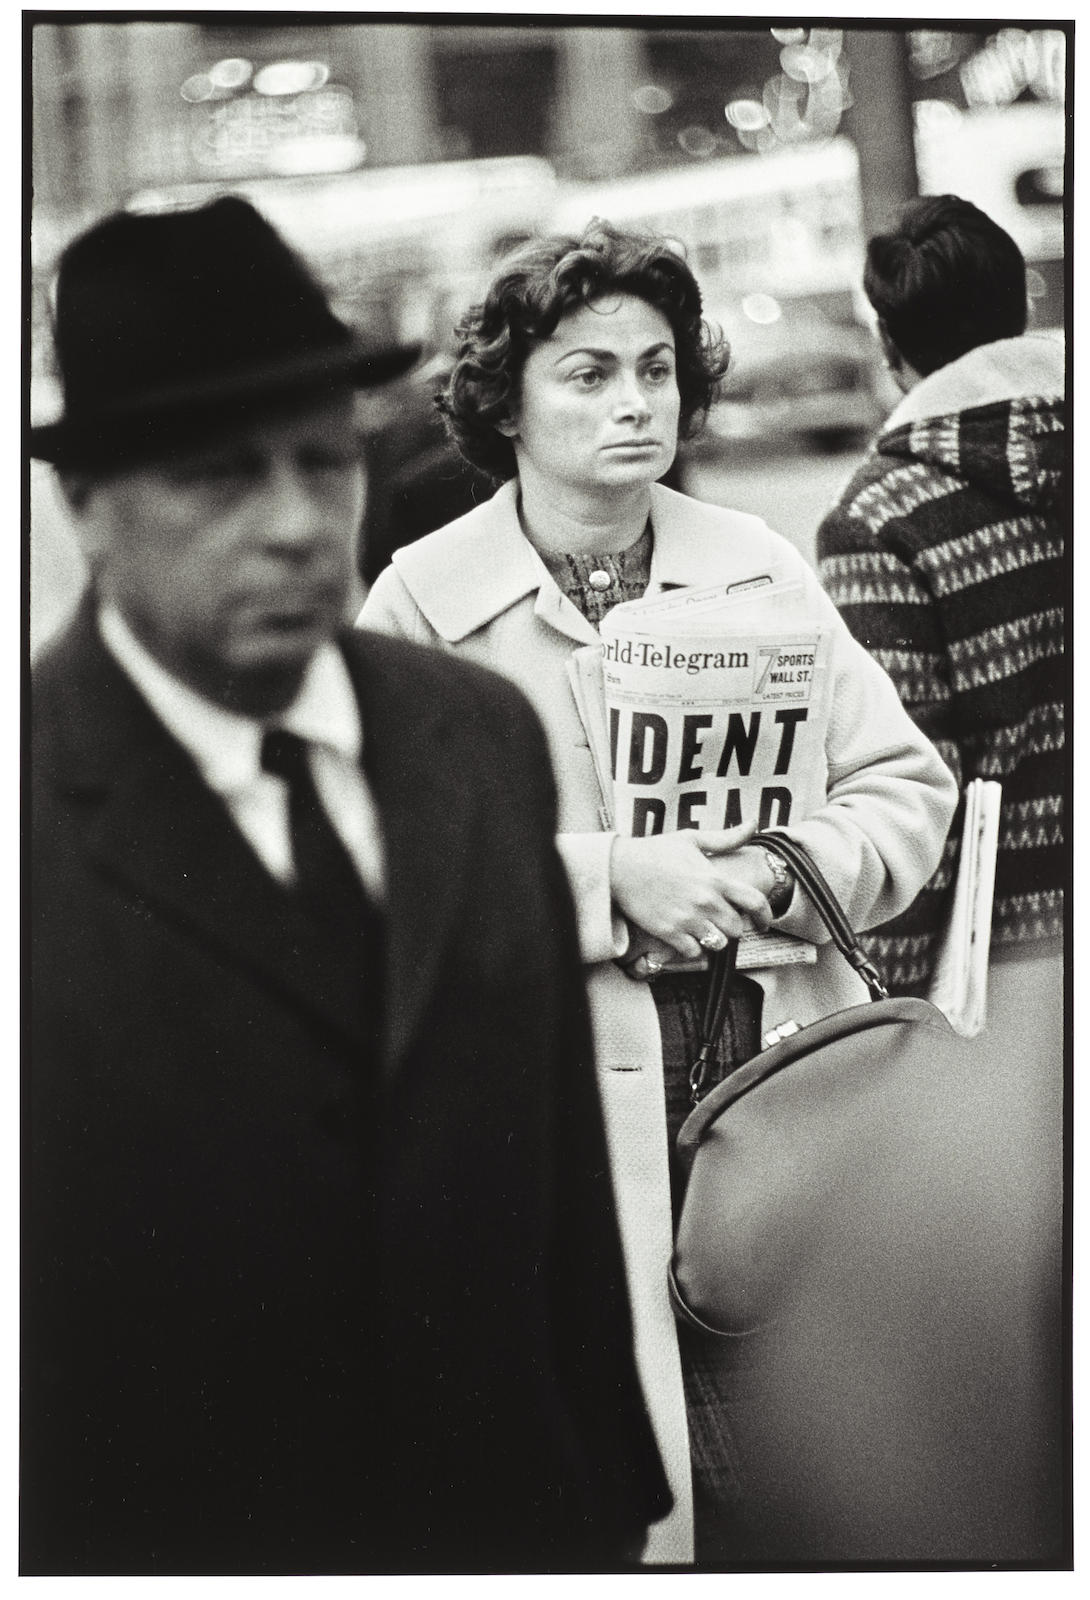 Richard Avedon-Kennedy Assassination, Times Square, New York City, November 22-1963